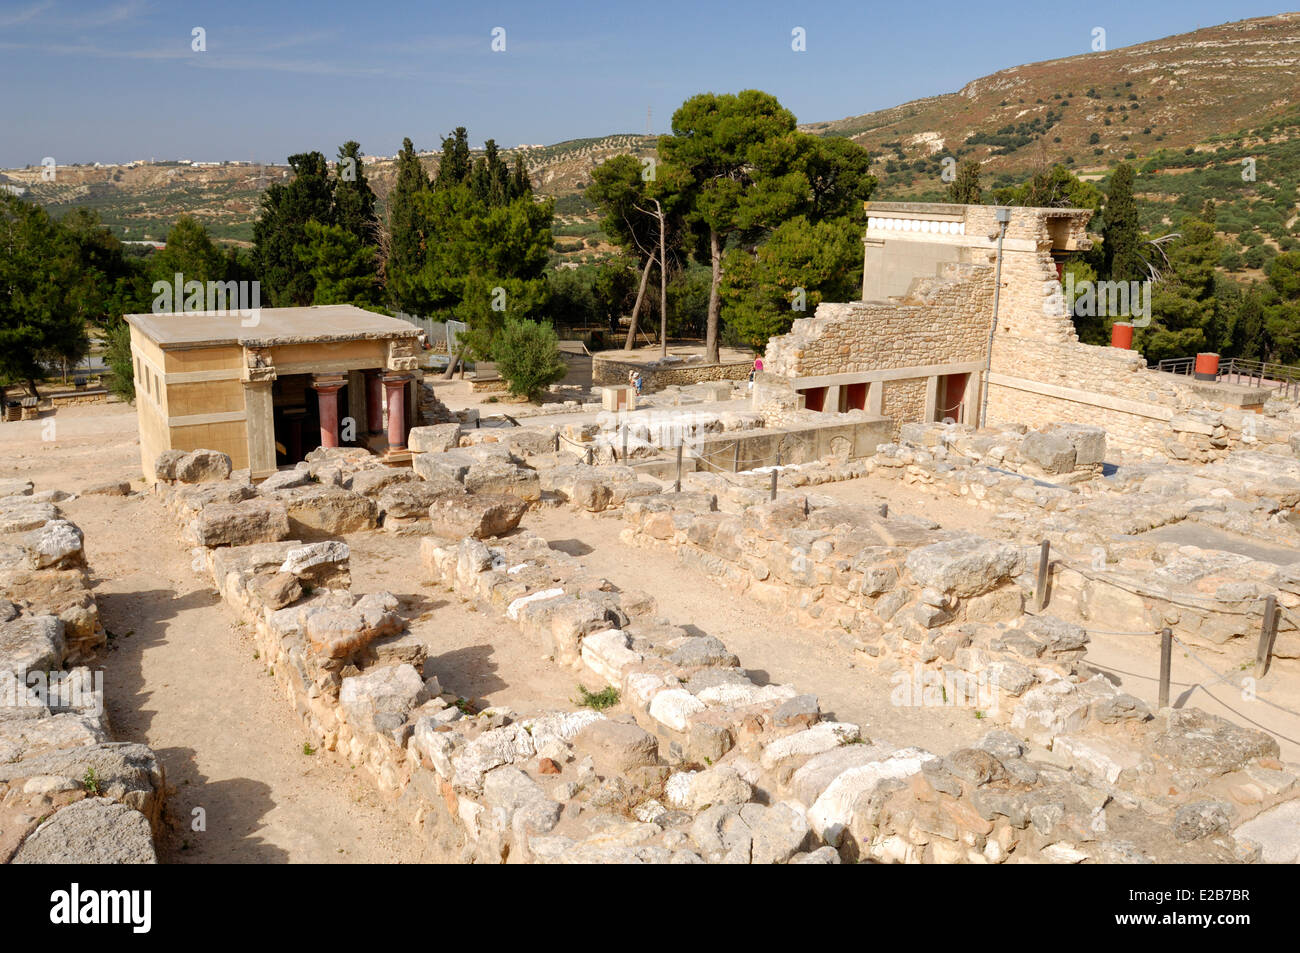 dating sites in crete greece The minoan civilization was an aegean bronze age civilization on the island of crete and  instead of dating the  bronze age archaeological site on crete .